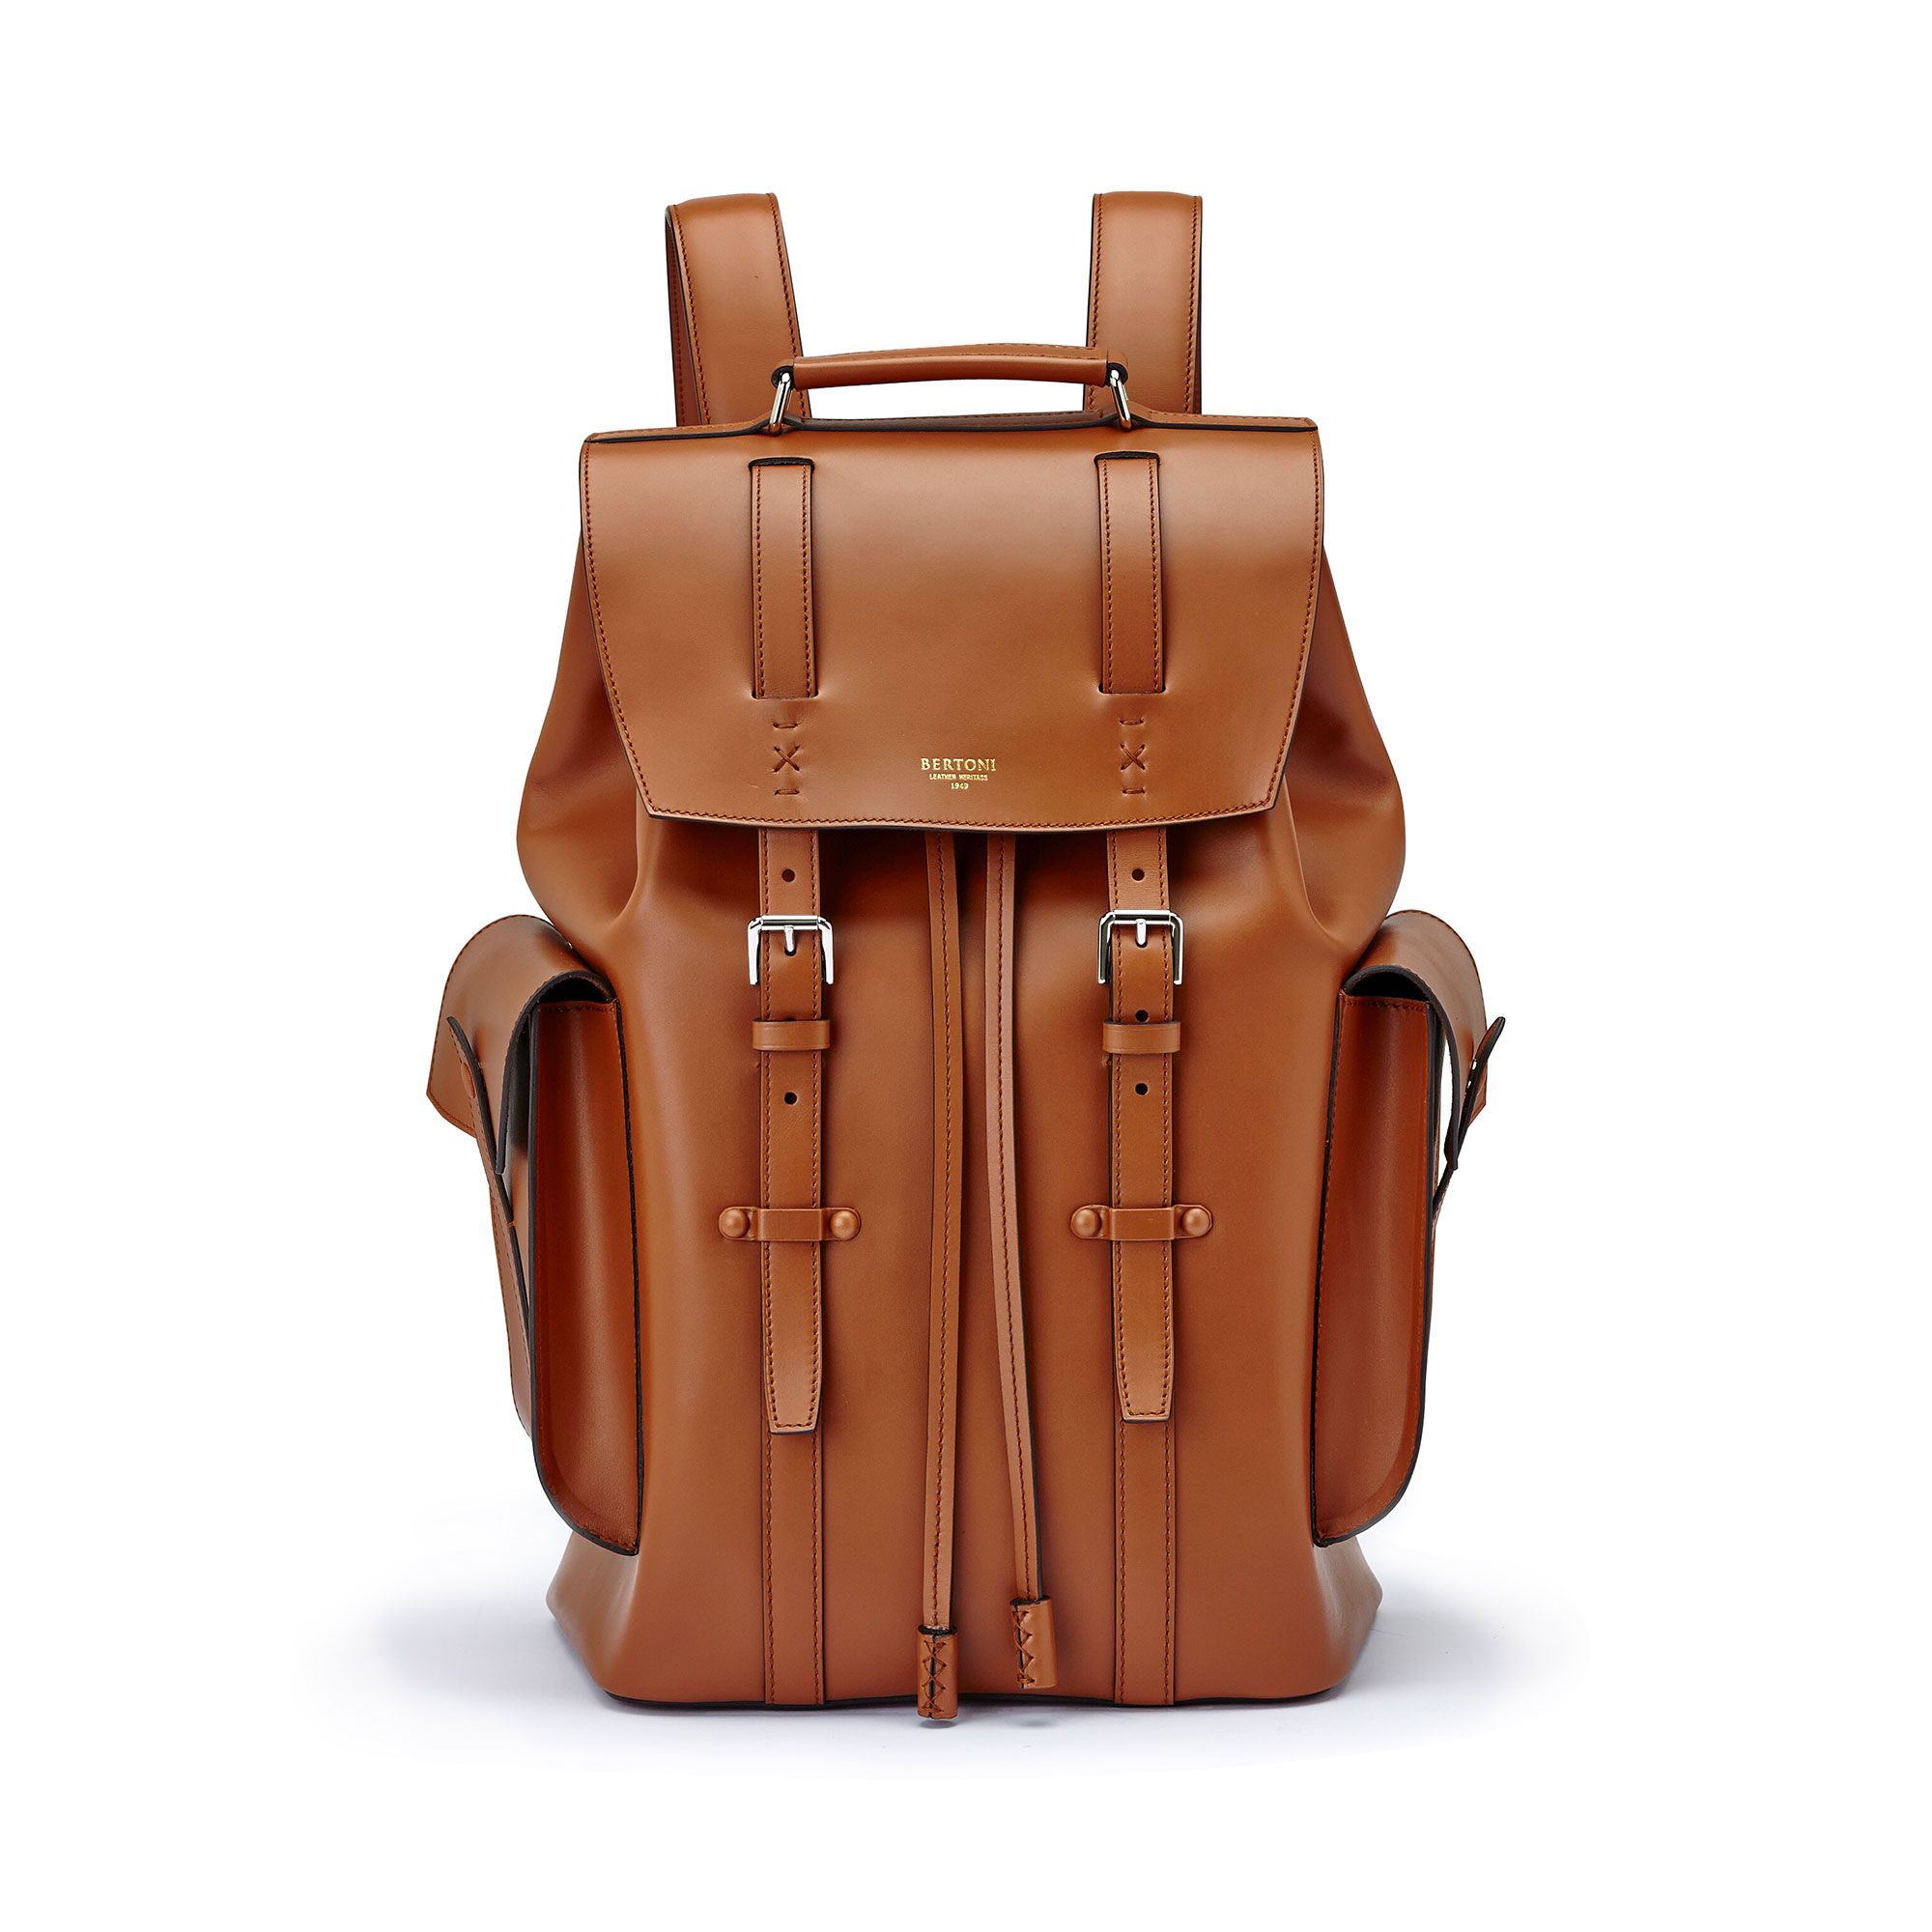 The terrabruciata french calf Traveller Backpack by Bertoni 1949 01